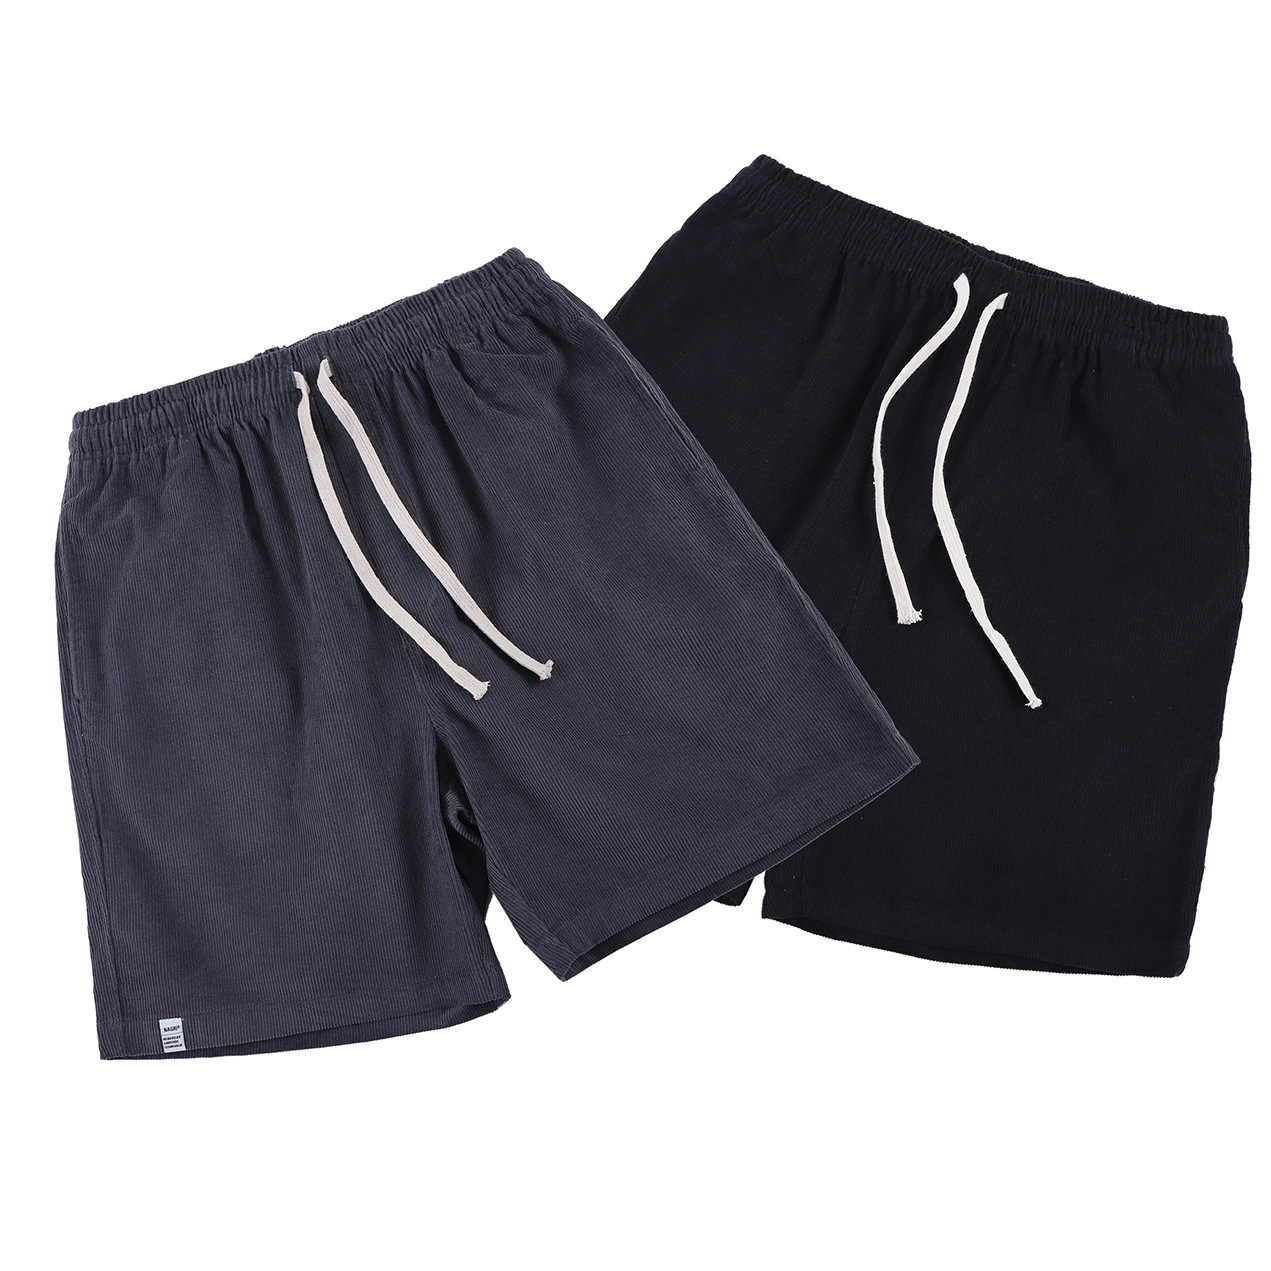 2019 Europe And America Popular Brand Summer New Style Striped Cotton Shorts Men's Large Size Solid Color Loose Casual Trend Sho